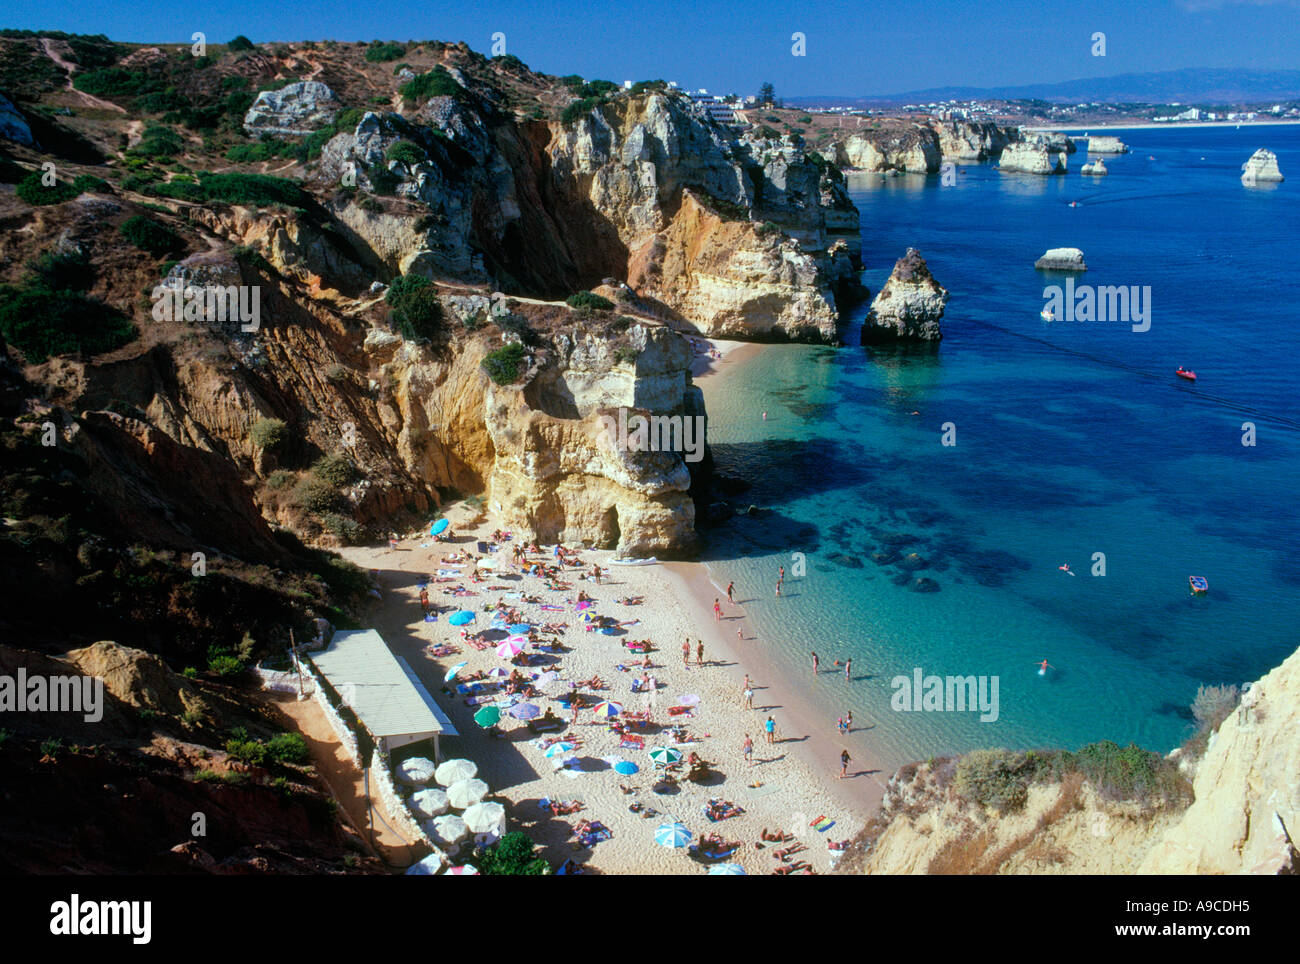 Beach resort Lagos Algarve Portugal - Stock Image